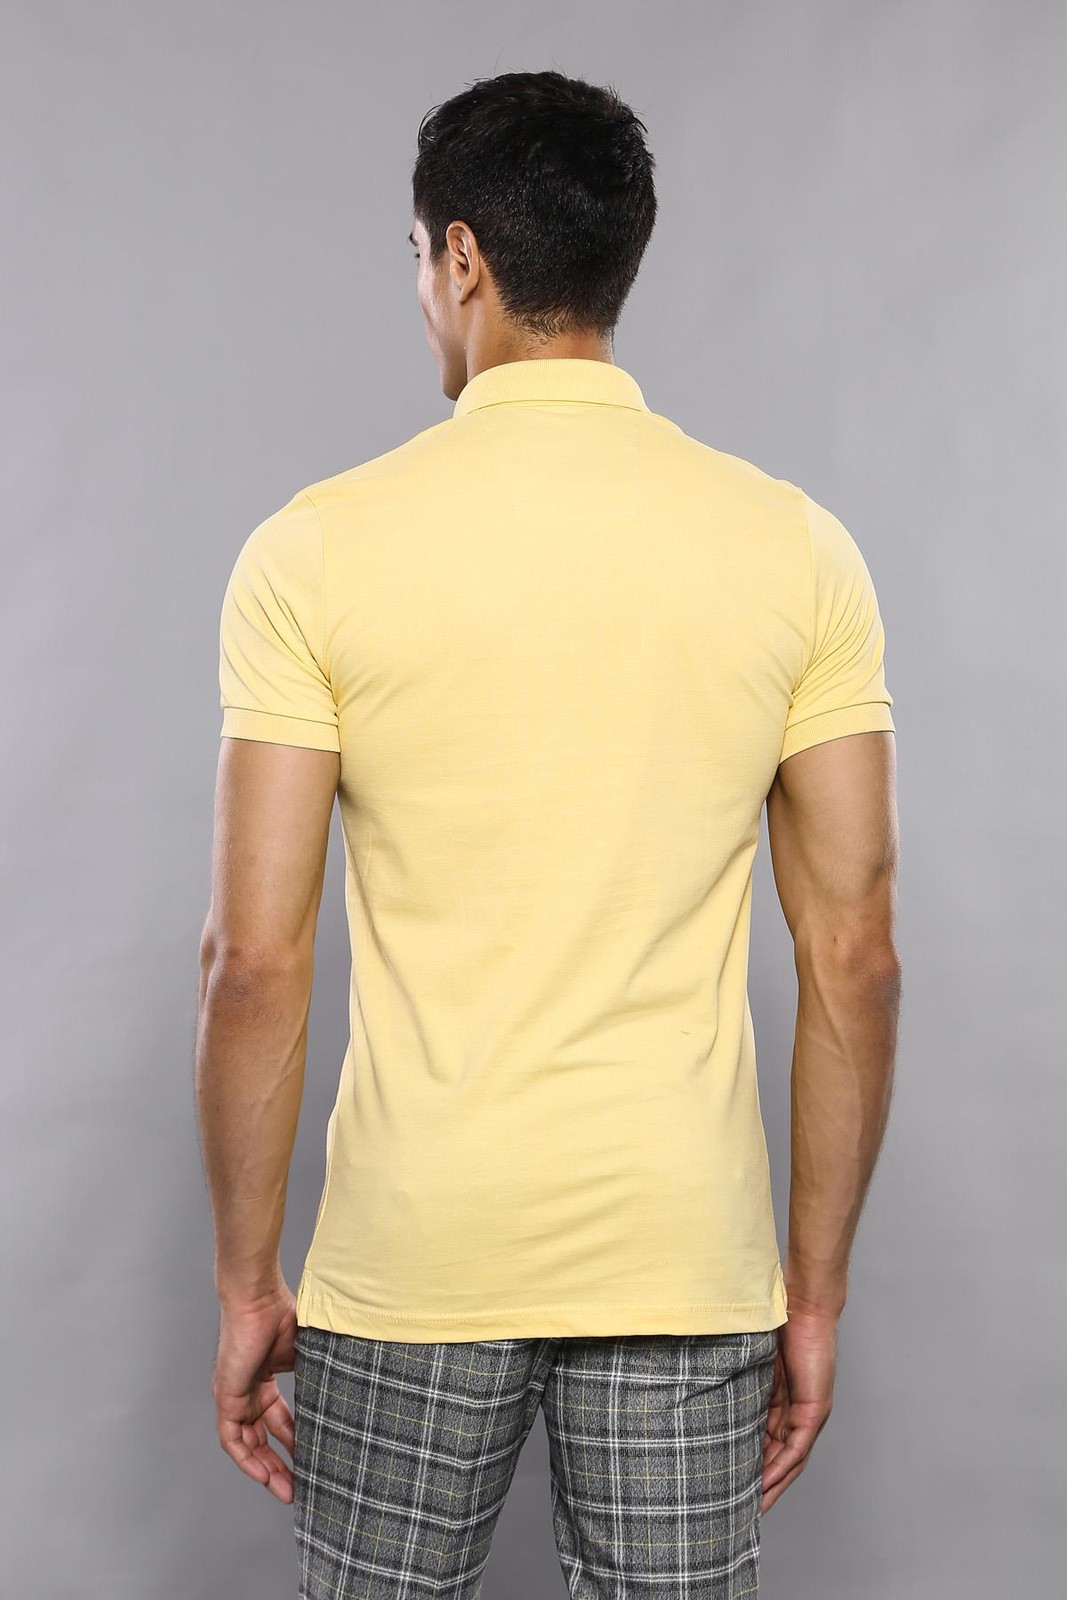 Polo Plain Yellow T-Shirt | Wessi